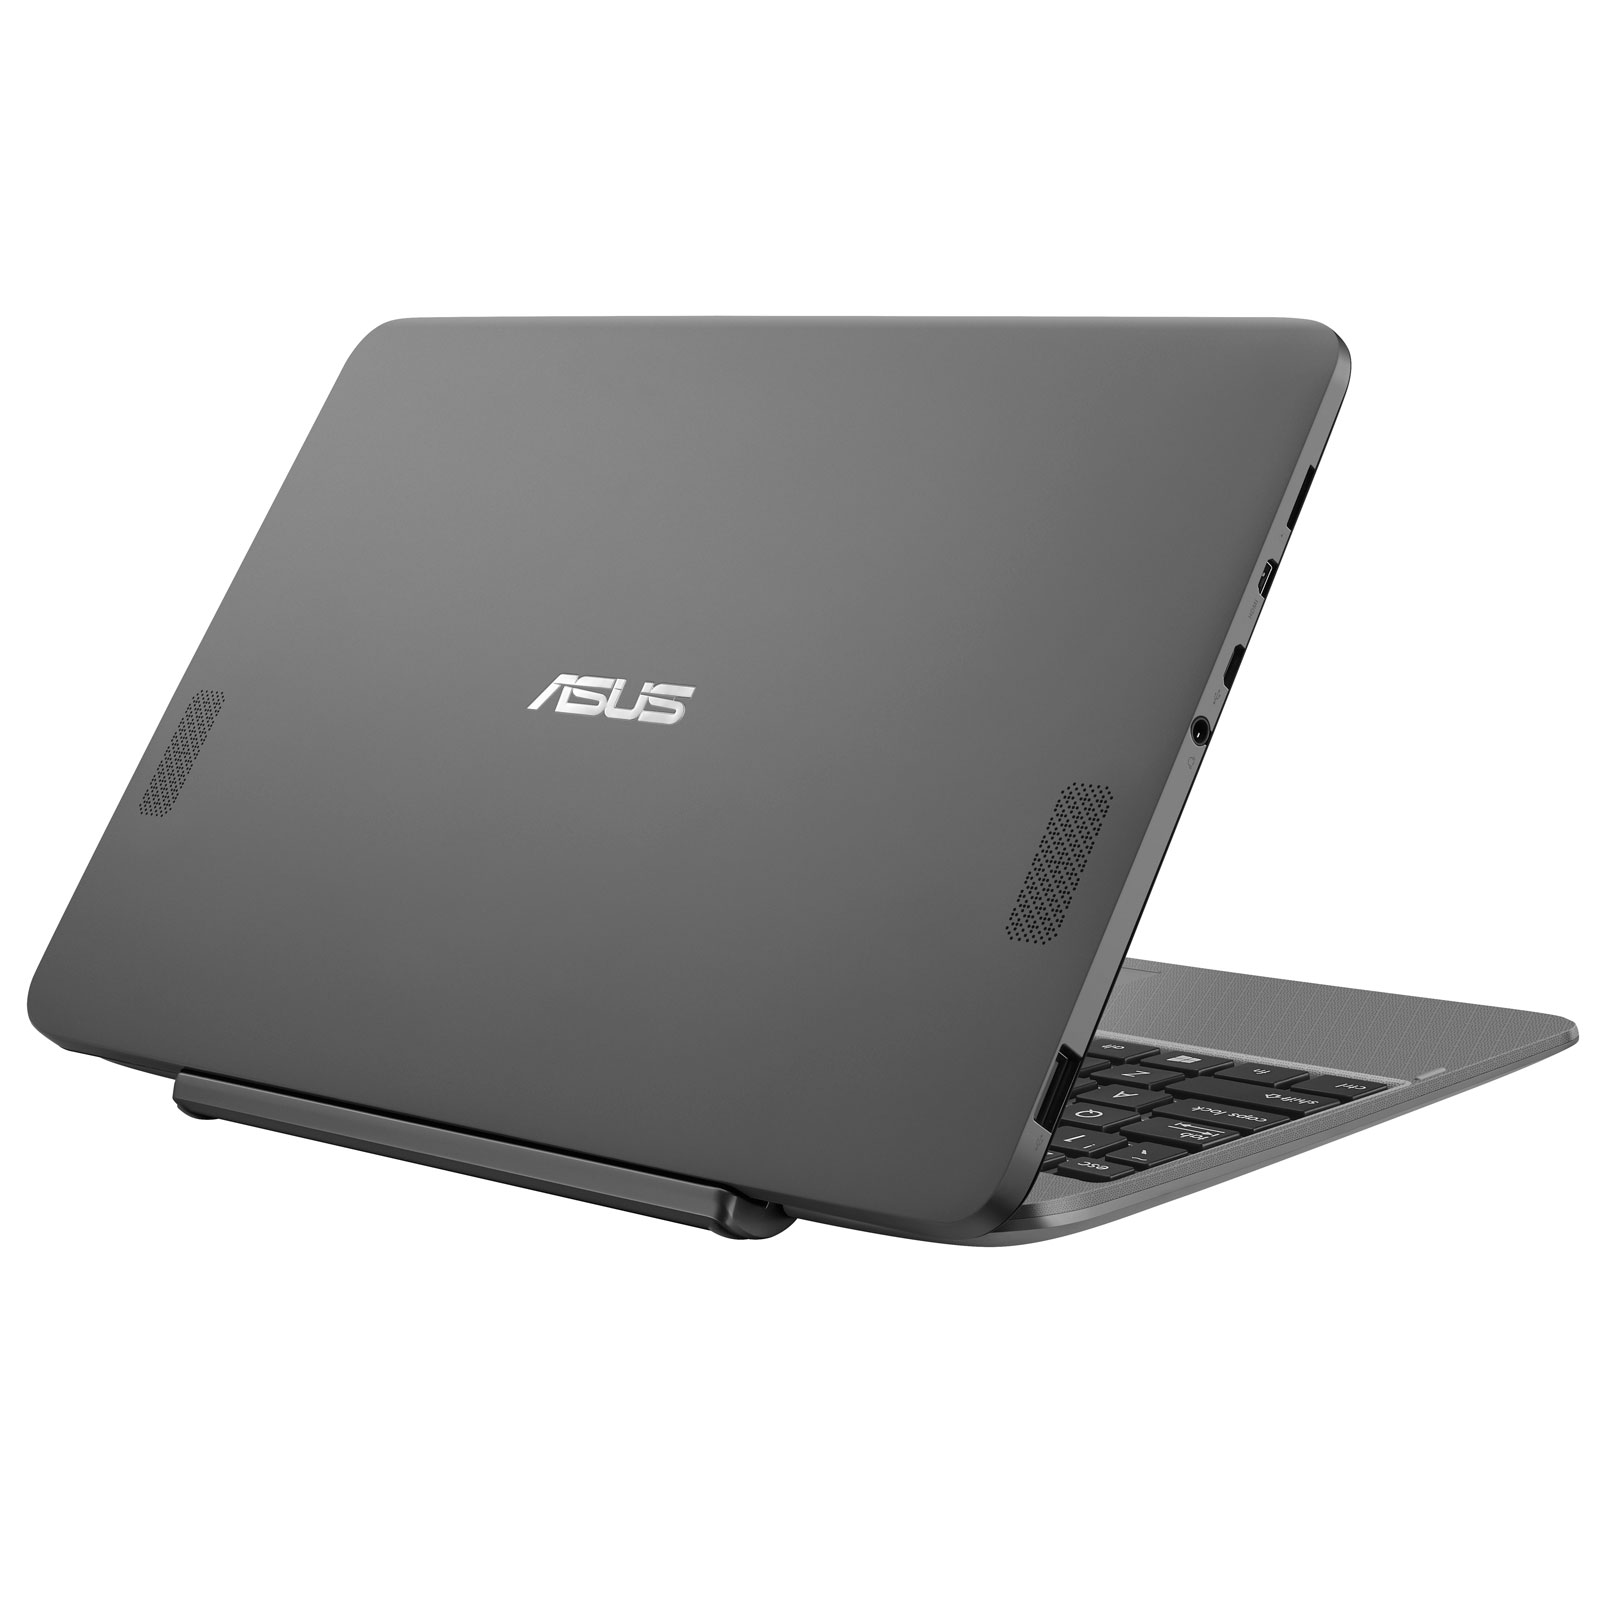 Asus T101HA-GR029RB - PC portable Asus - Cybertek.fr - 1